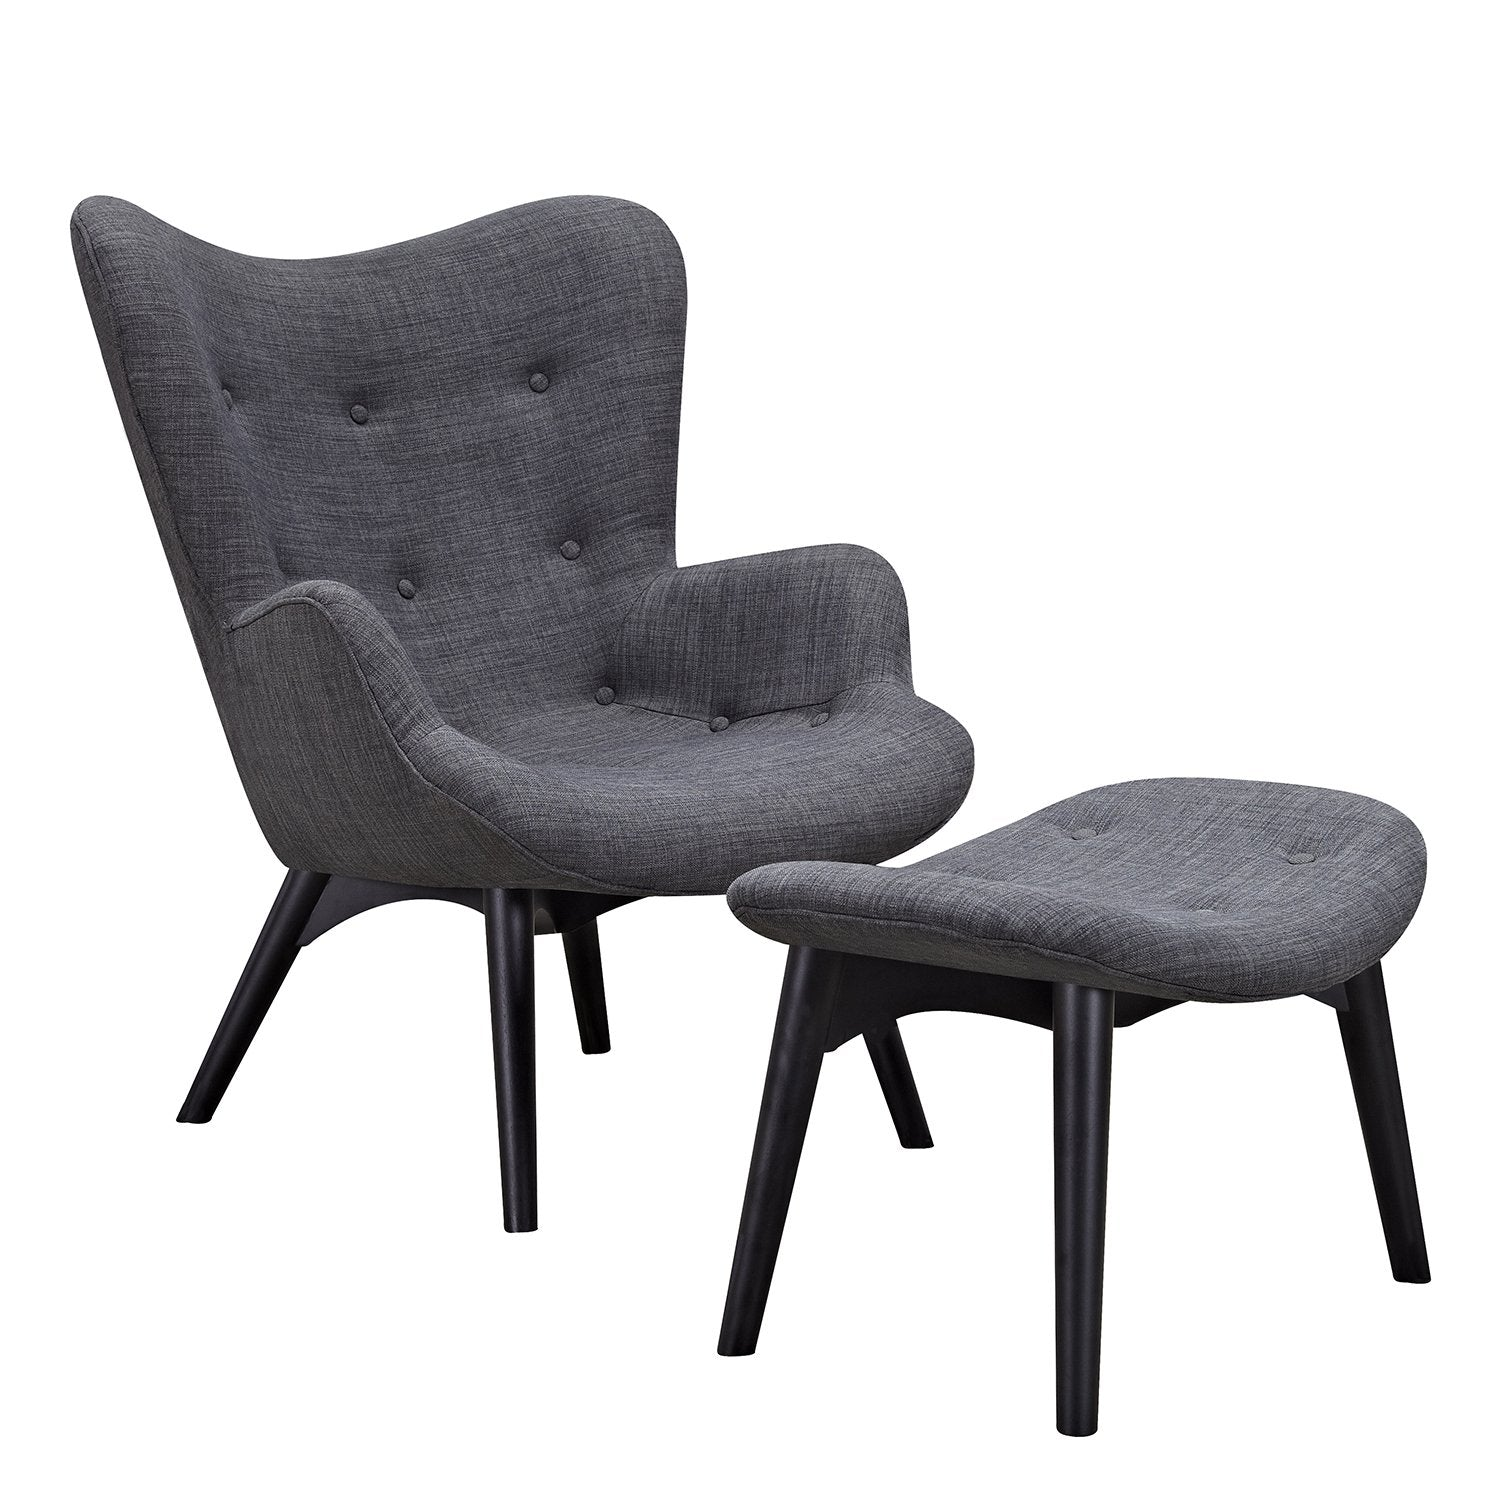 Aiden Chair And Ottoman In Charcoal Gray Fabric With Black Ash Legs Accent  Chairs  ...